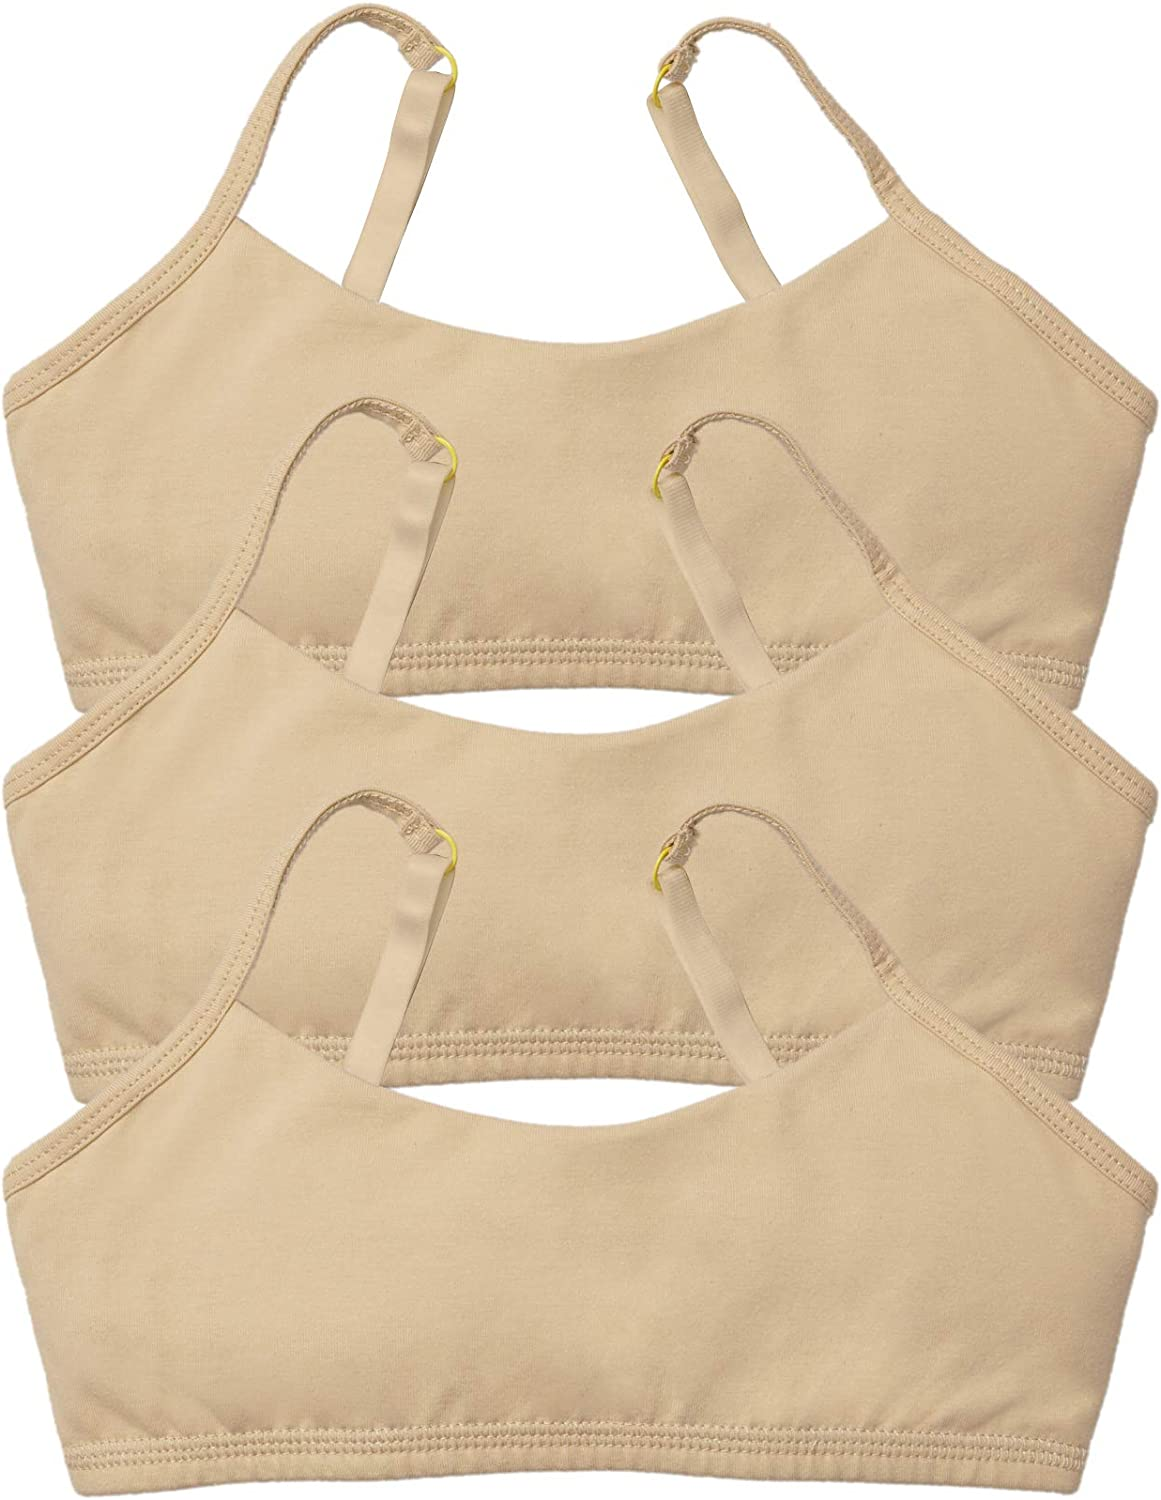 Yellowberry Best First Cotton Training Bra Bundle Bras Ladybug Gimme S'More - Great First Bras for Girls Tweens and Teens